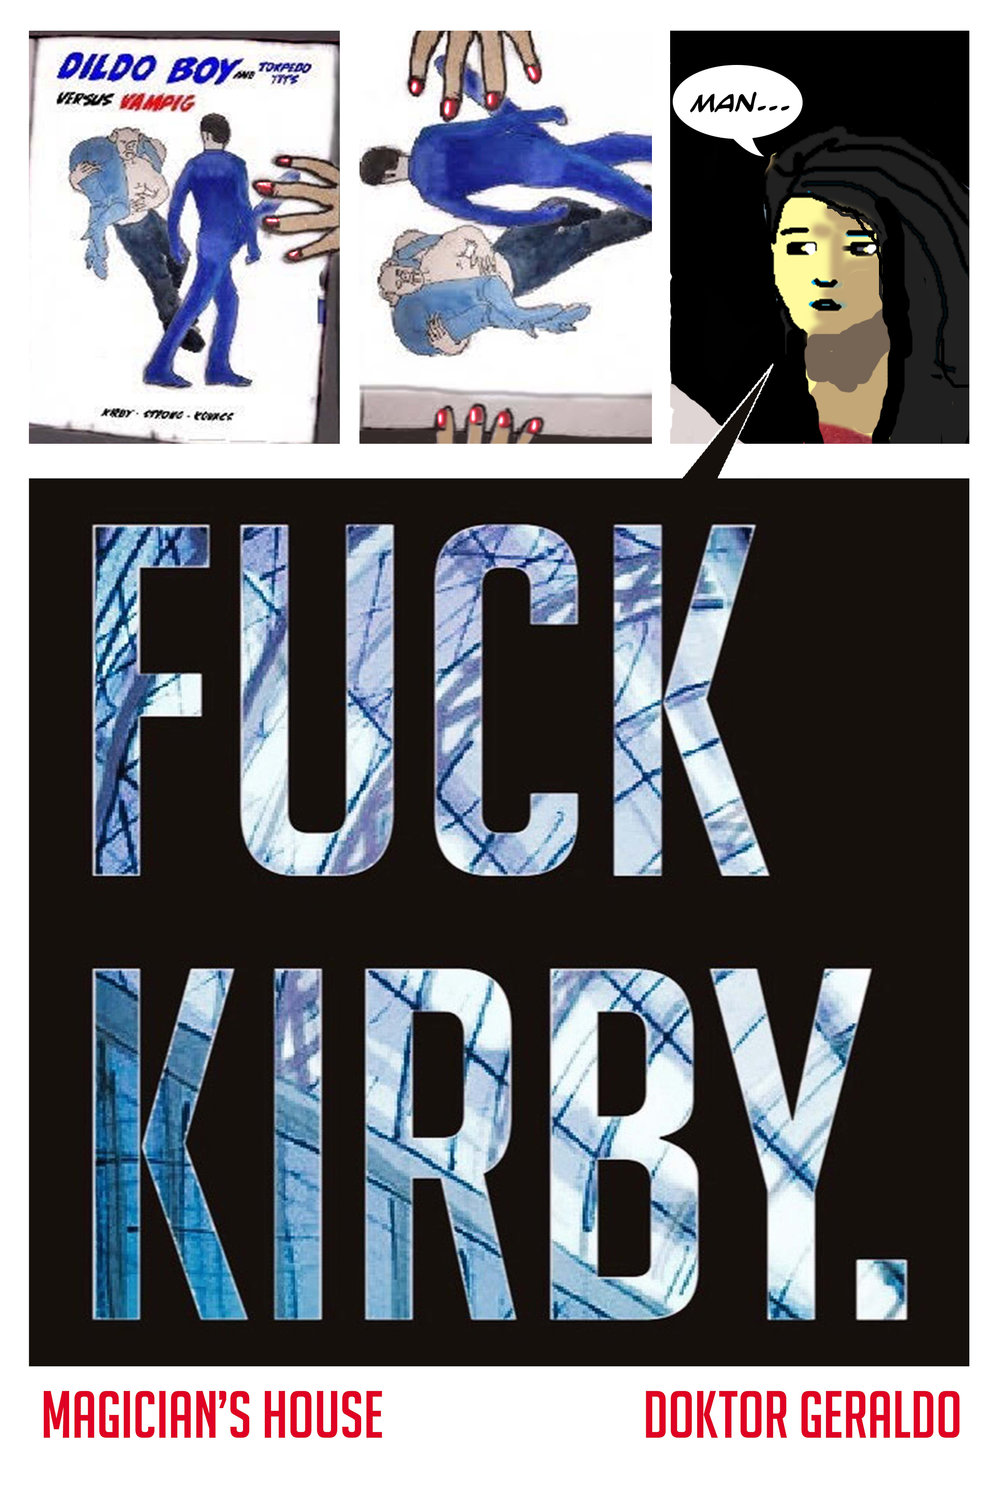 Above: Cover of FUCK KIRBY.